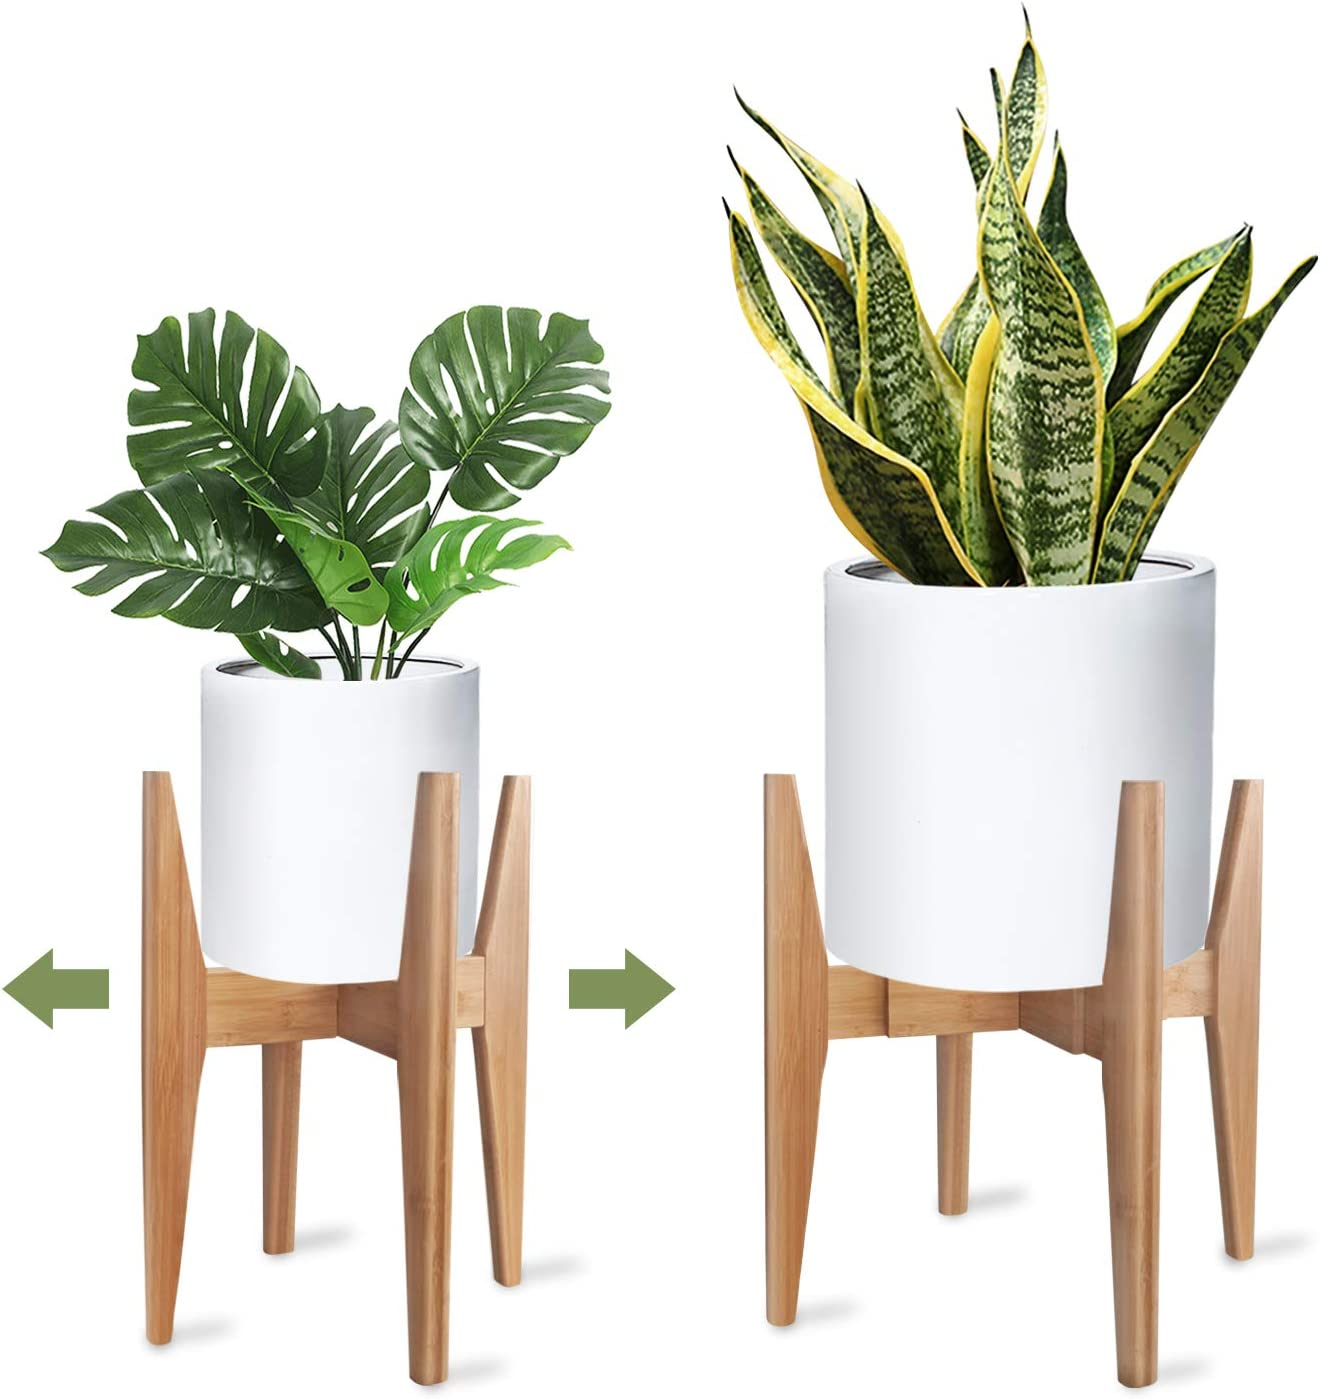 POT NOT INCLUDED Modern Plant Stand Indoor Wood Potted Holder White Minimalist Display Plant Stool for Living Room Bedroom Adjustable for pots from 10 to 13 Inches